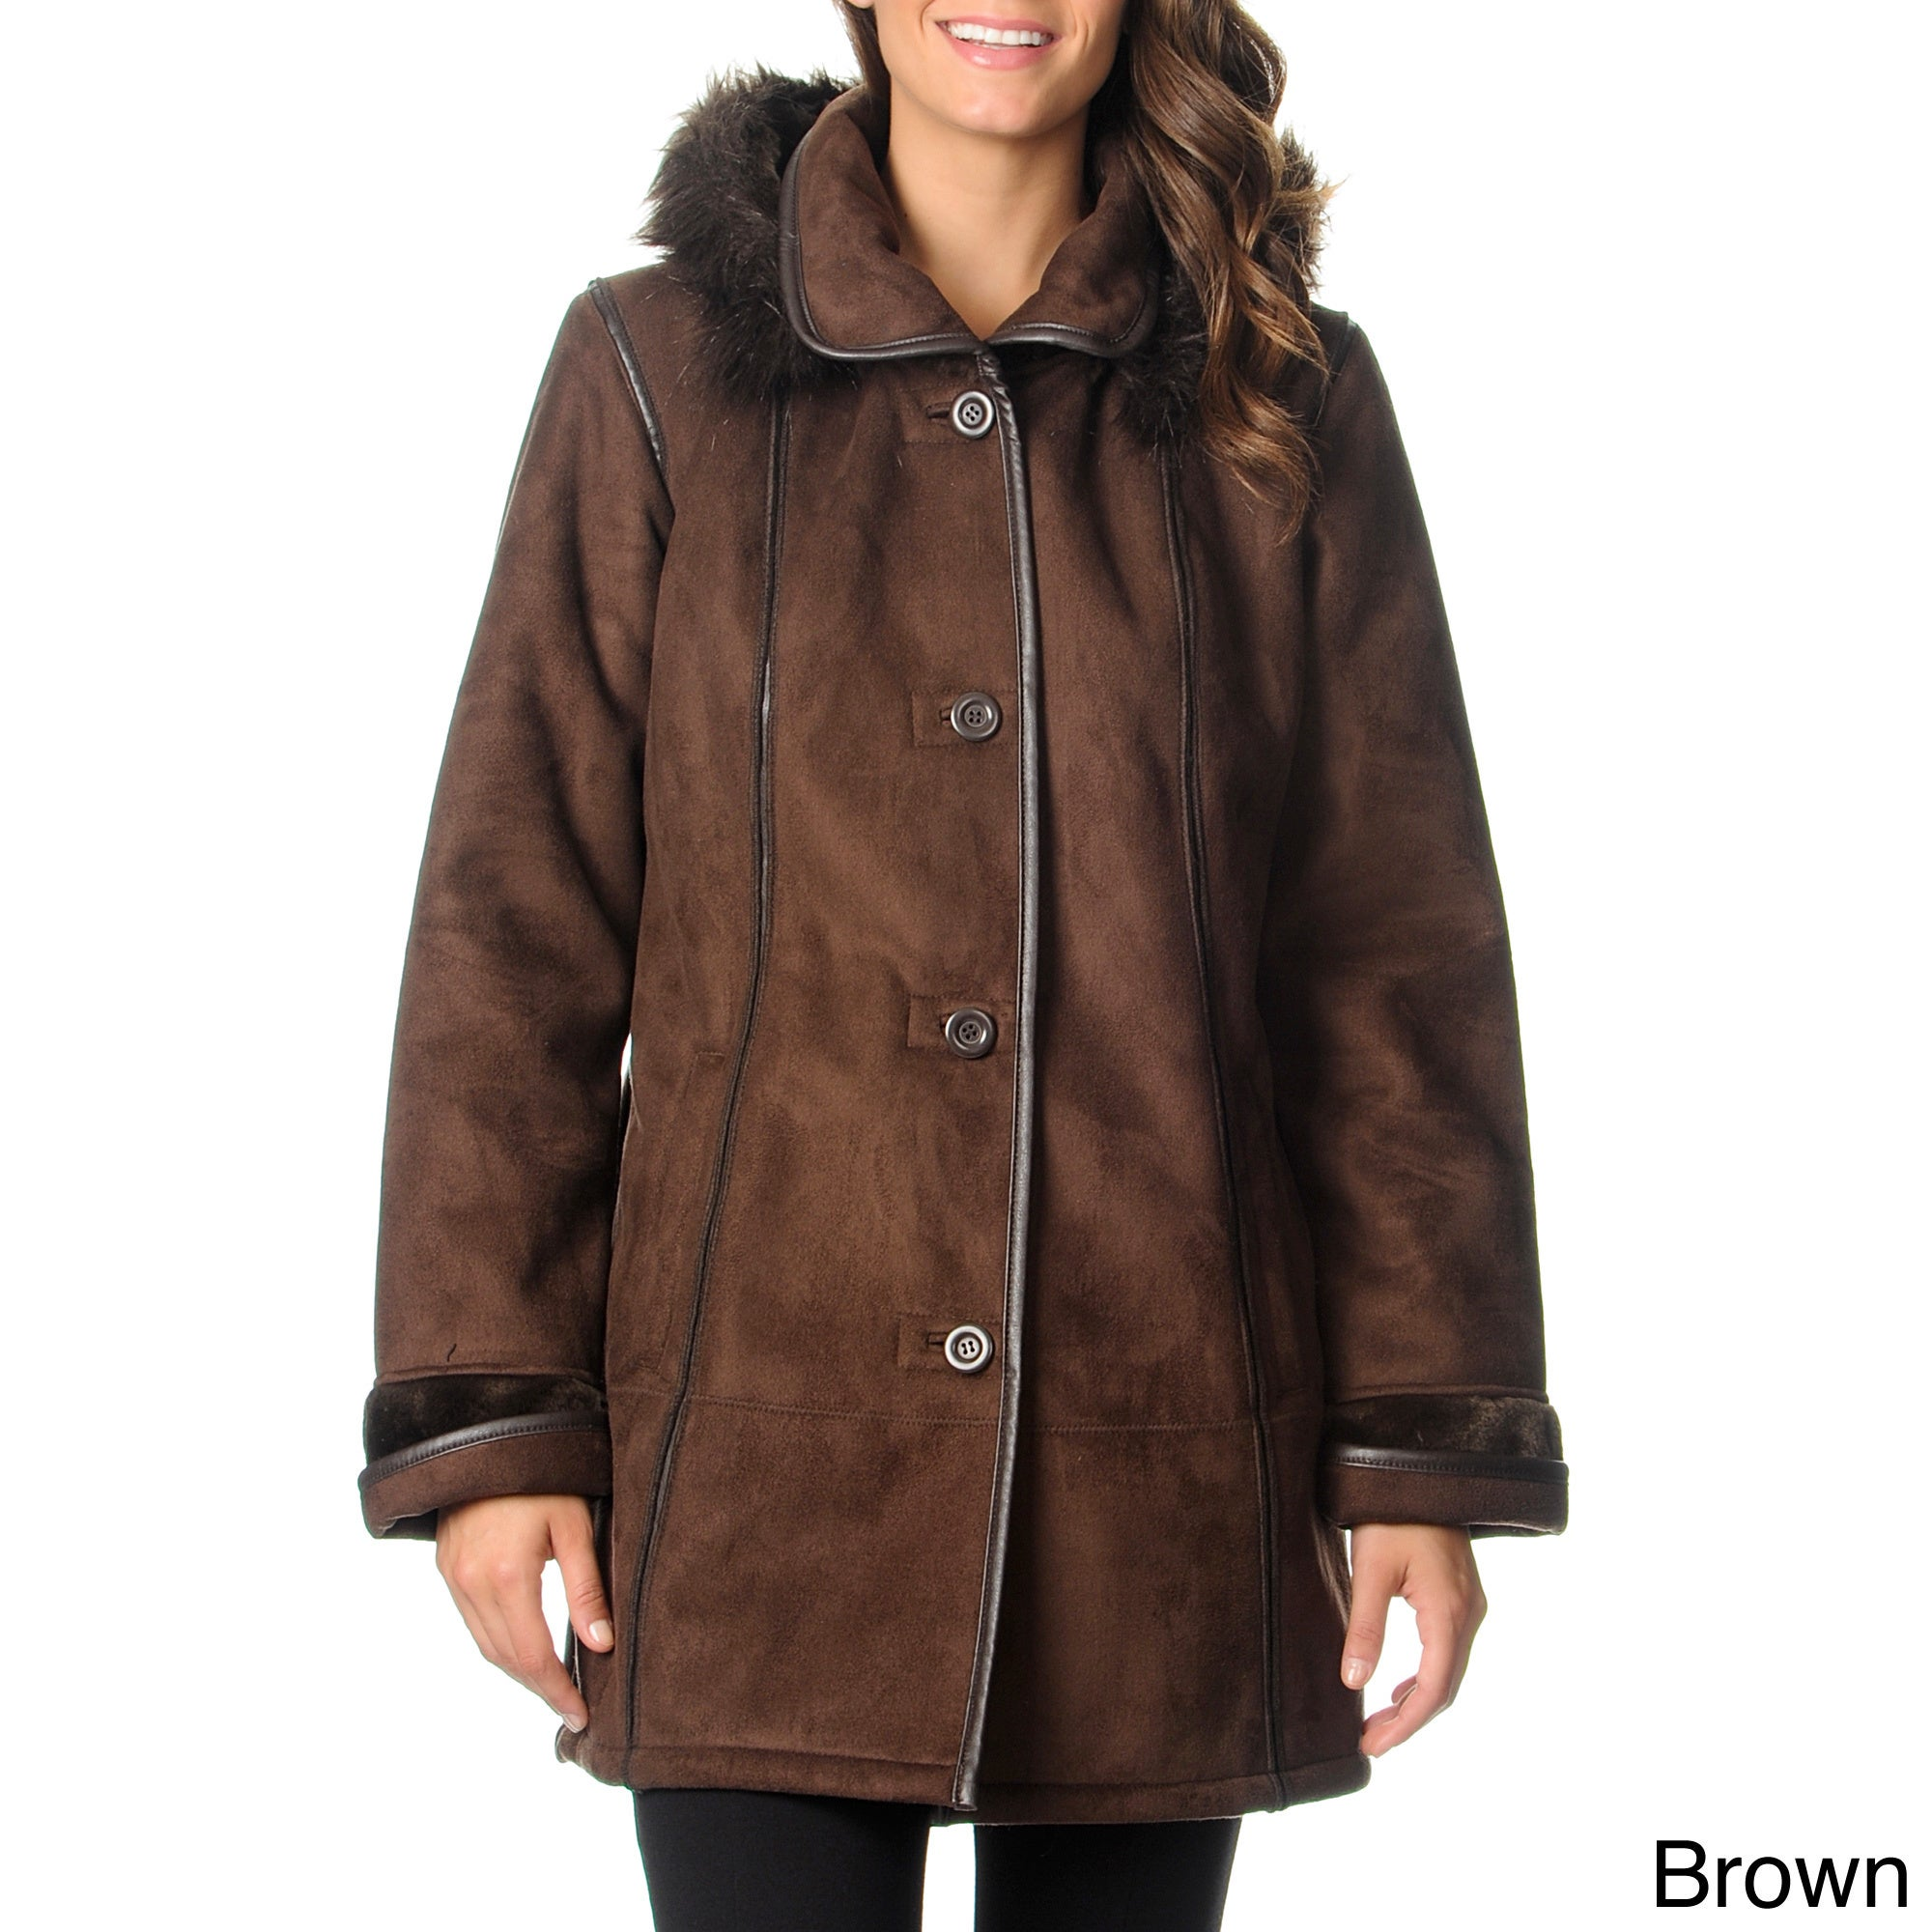 Excelled Women's Black Faux Shearling 3/4-length Coat (Br...